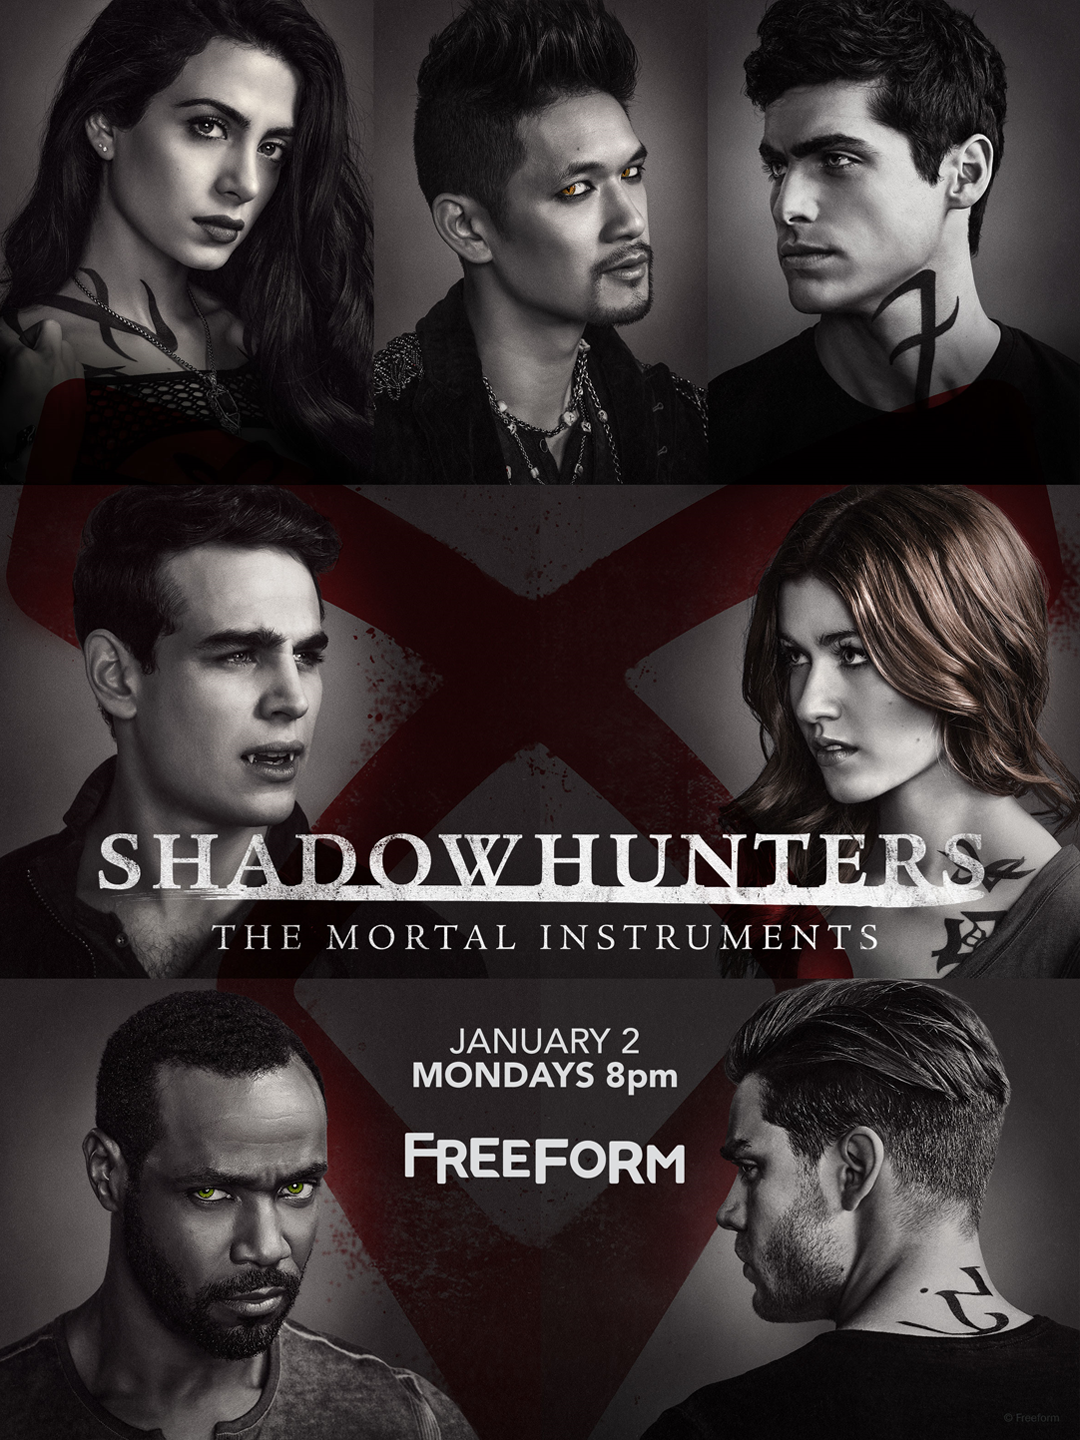 Shadowhunters - Are You Ready To Unlock The Final Shadowhunters Season 2 Posters? We've Got Two More! - 1003